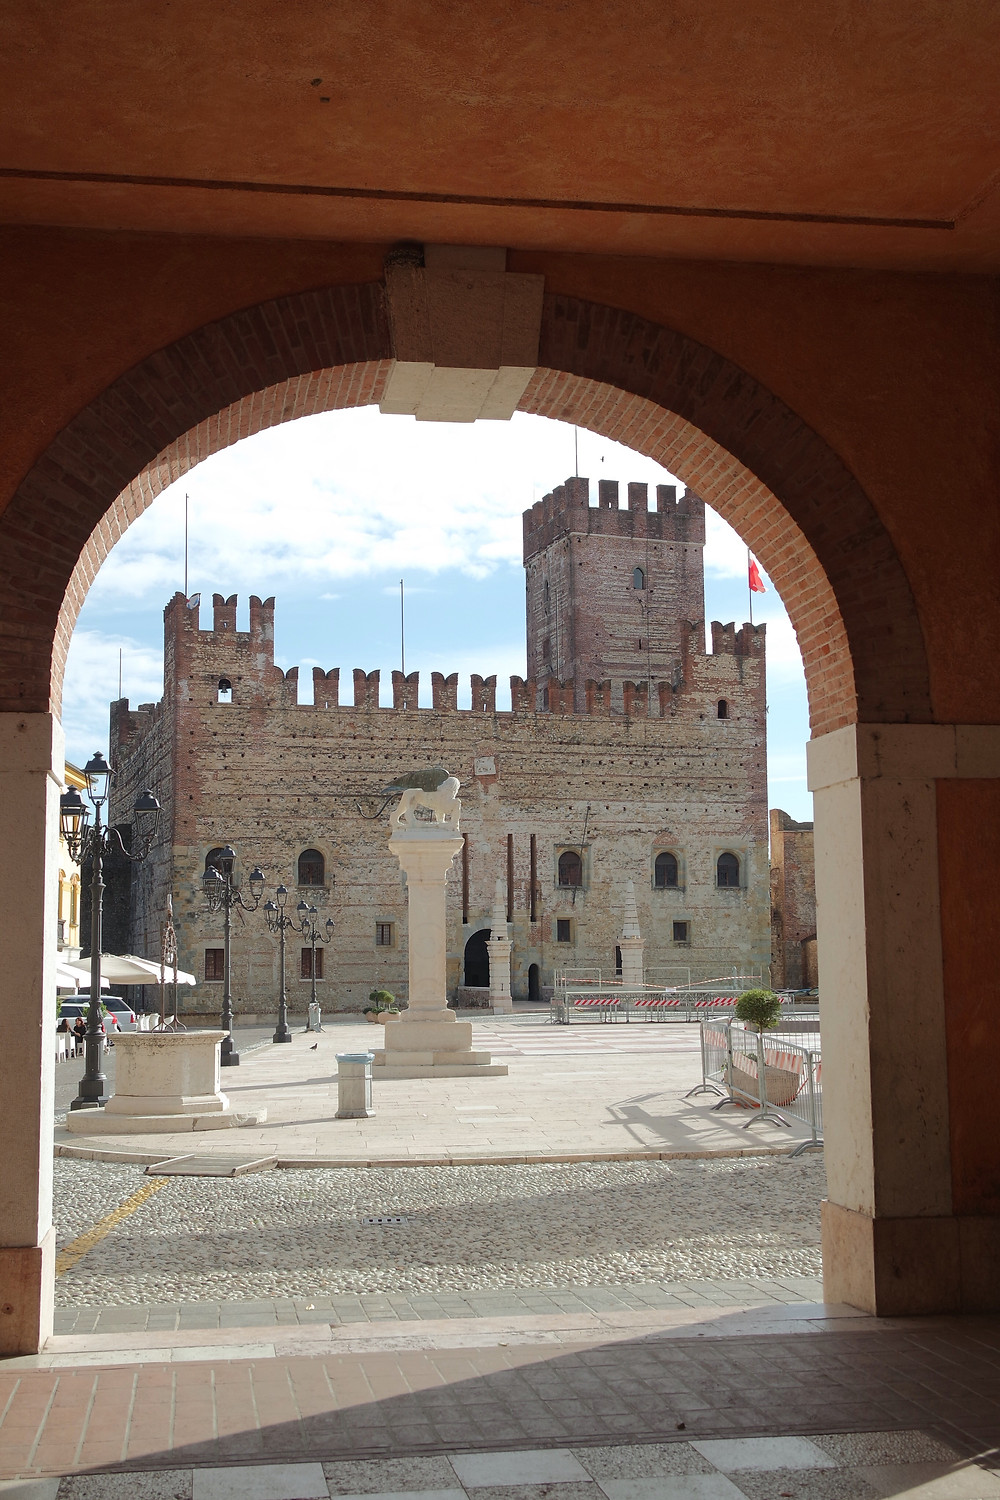 A brick arch looking out onto the square of Marostica and the medieval stone gate house with tower and crenelations.